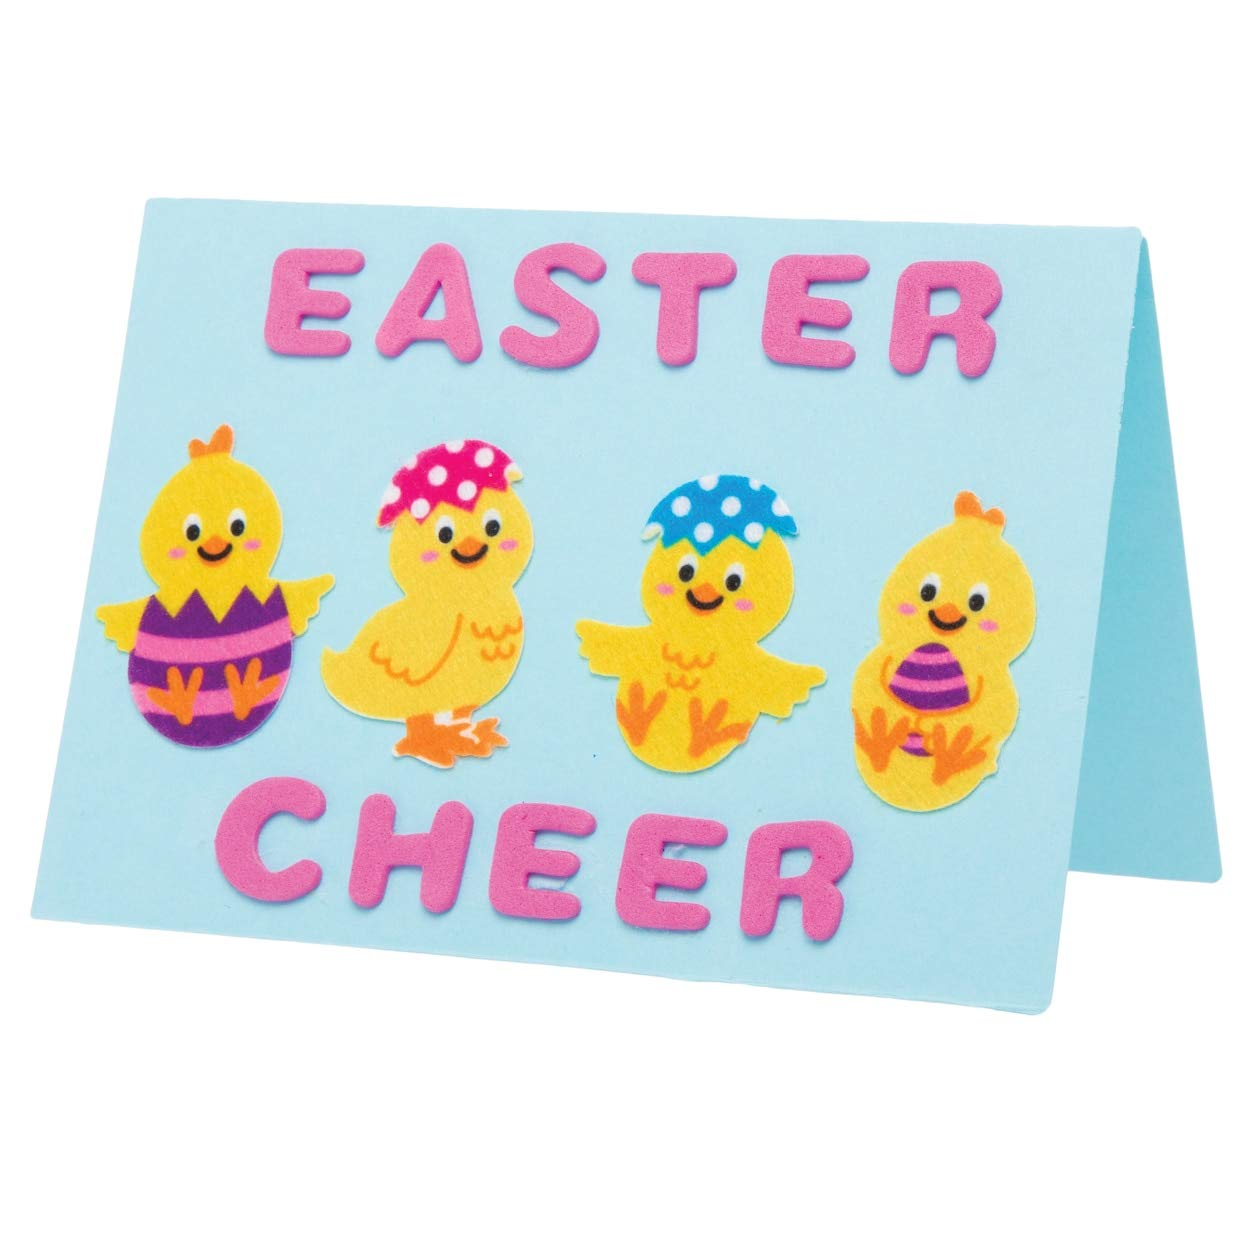 Small Stickers for Childrens Art and Craft Projects 100 Pack Baker Ross Easter Chick Felt Stickers